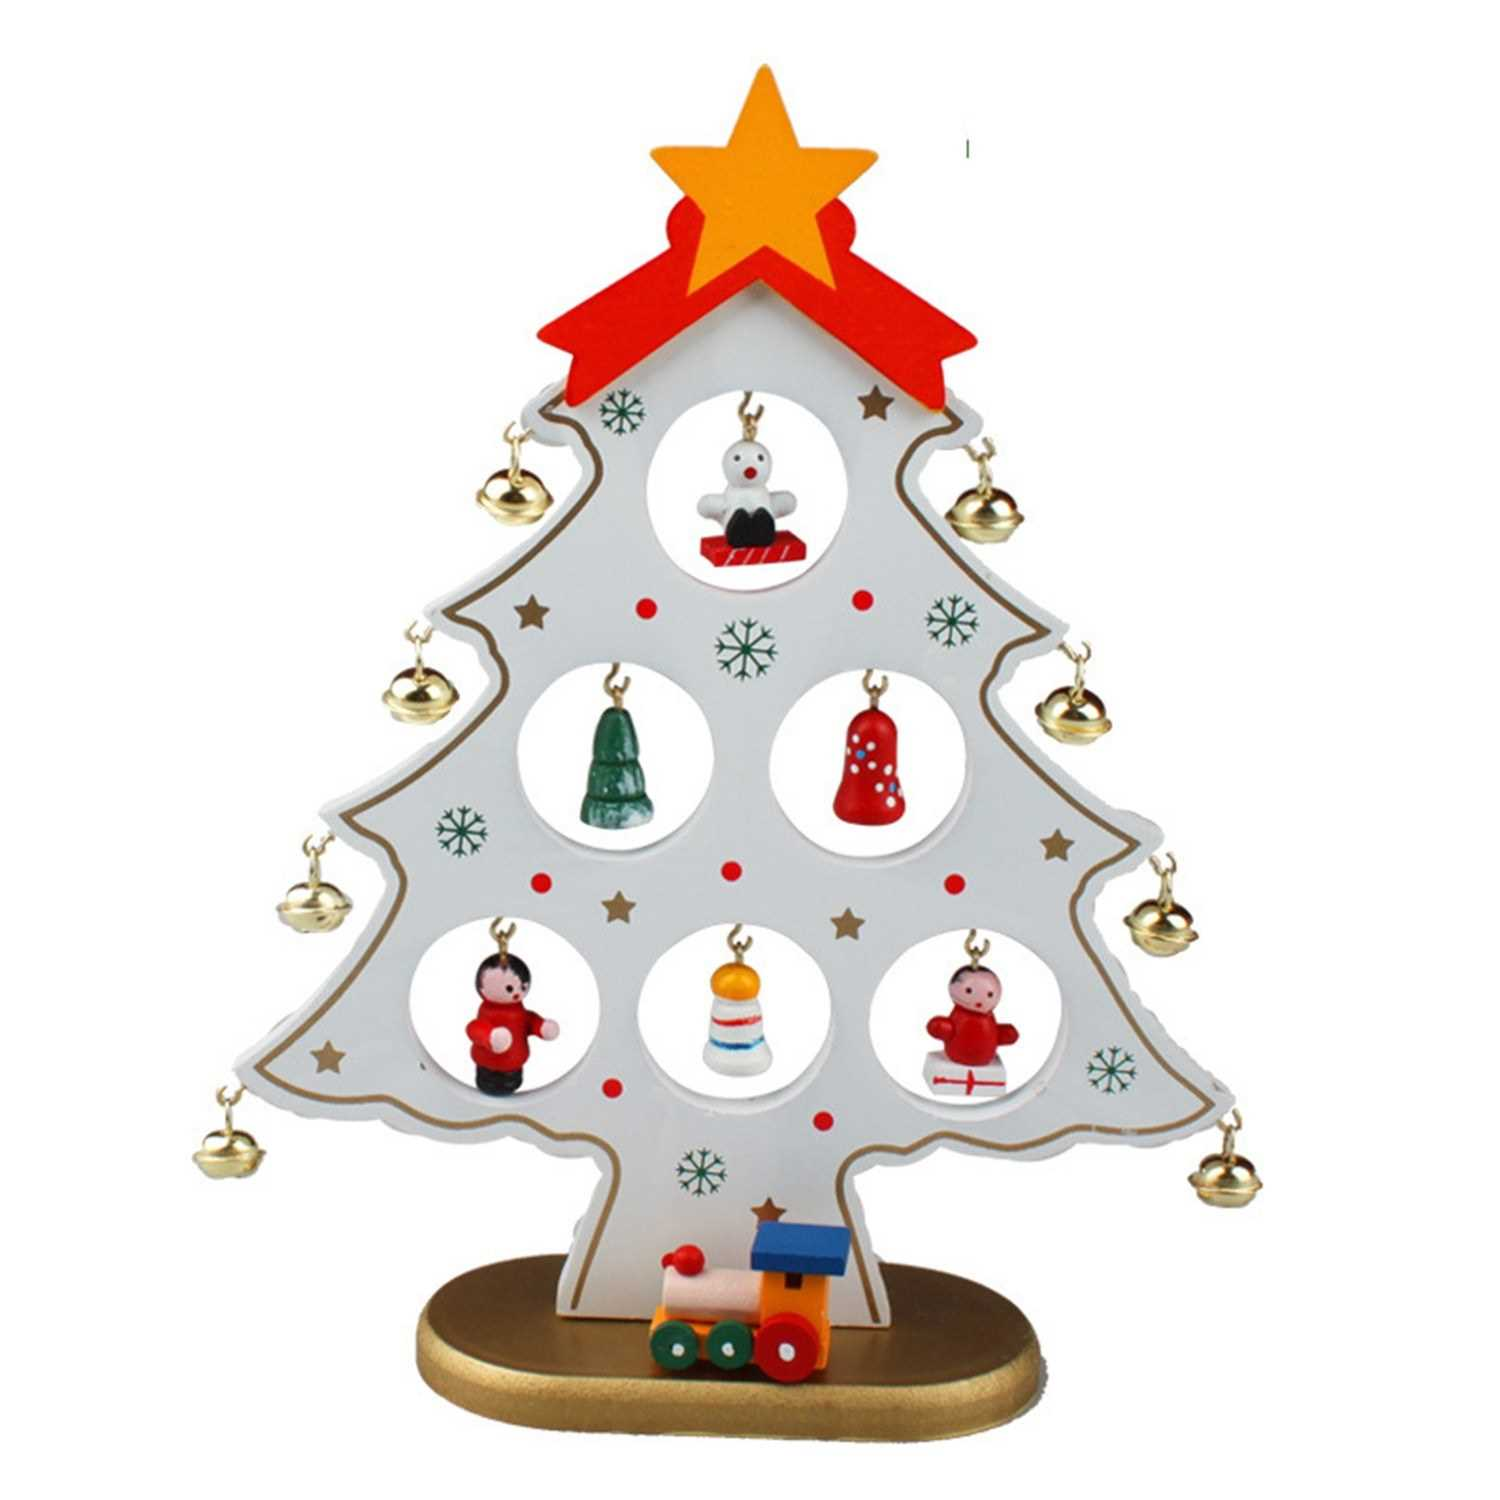 8 66 Inch Christmas Tree With Hanging Decorations Decorative Wooden Xmas Tree Hanging Ornaments For Indoor Outdoor